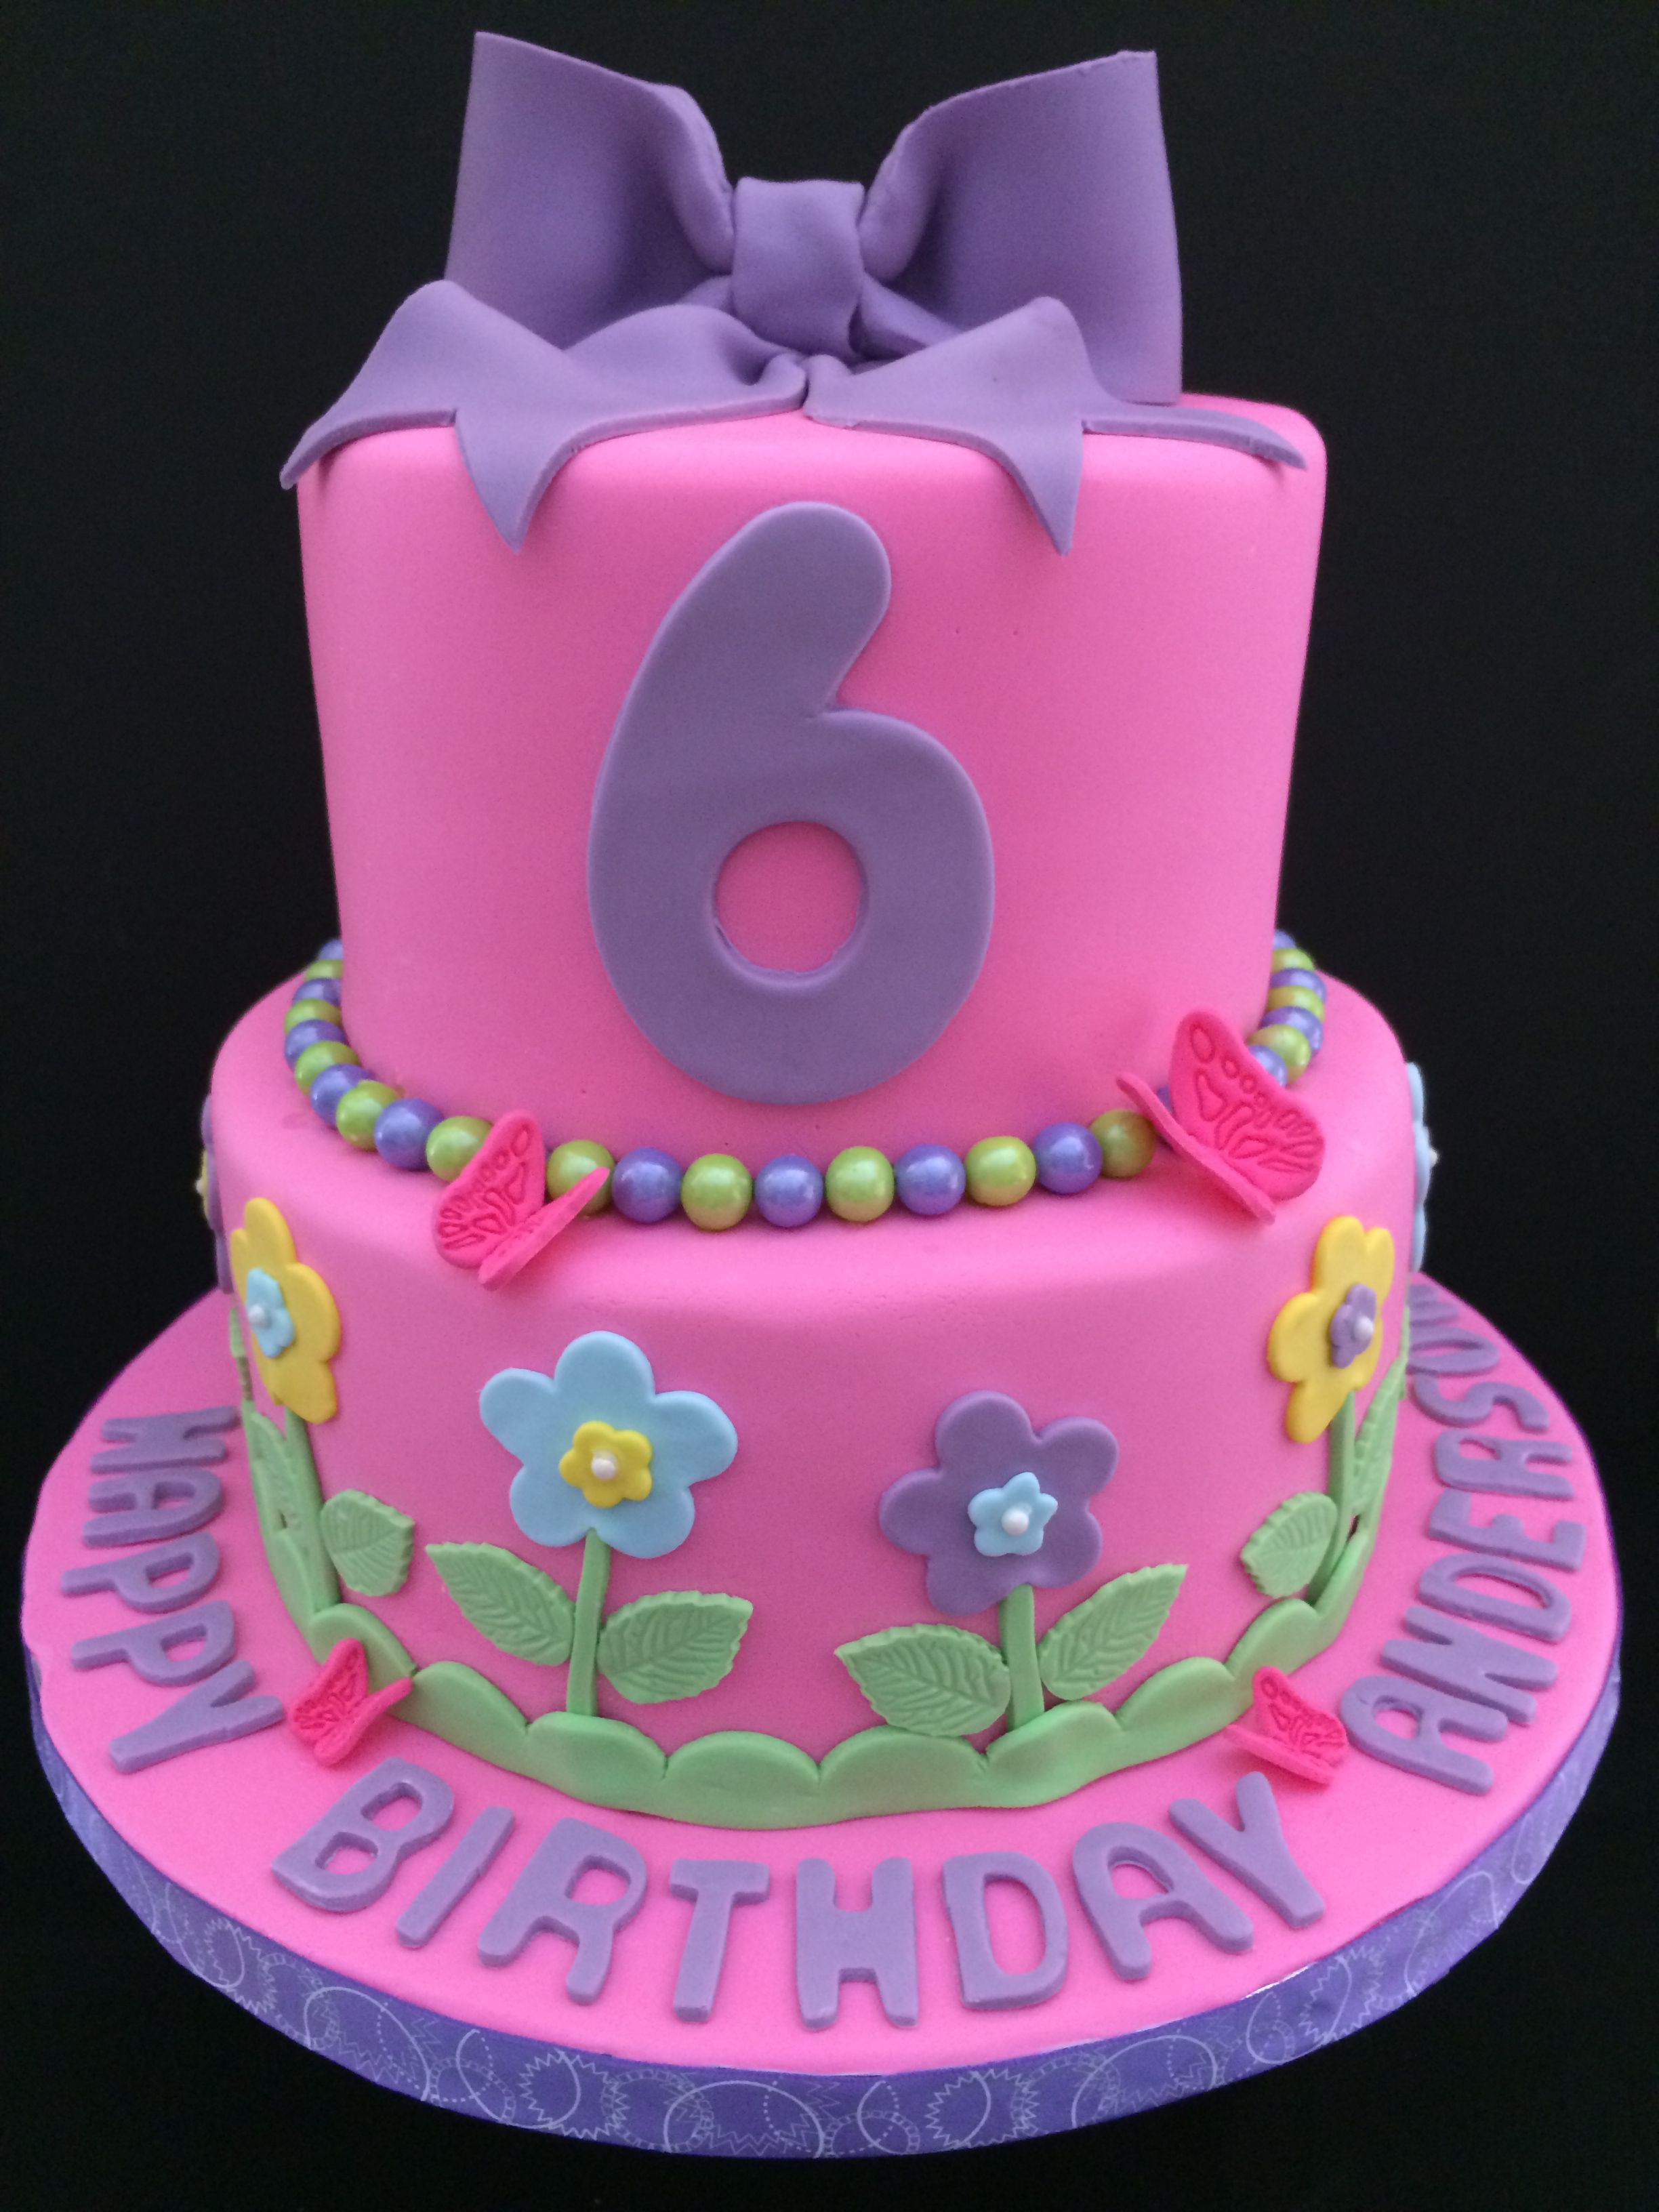 Birthday cake for a 6 year old girl Cakes Pinterest